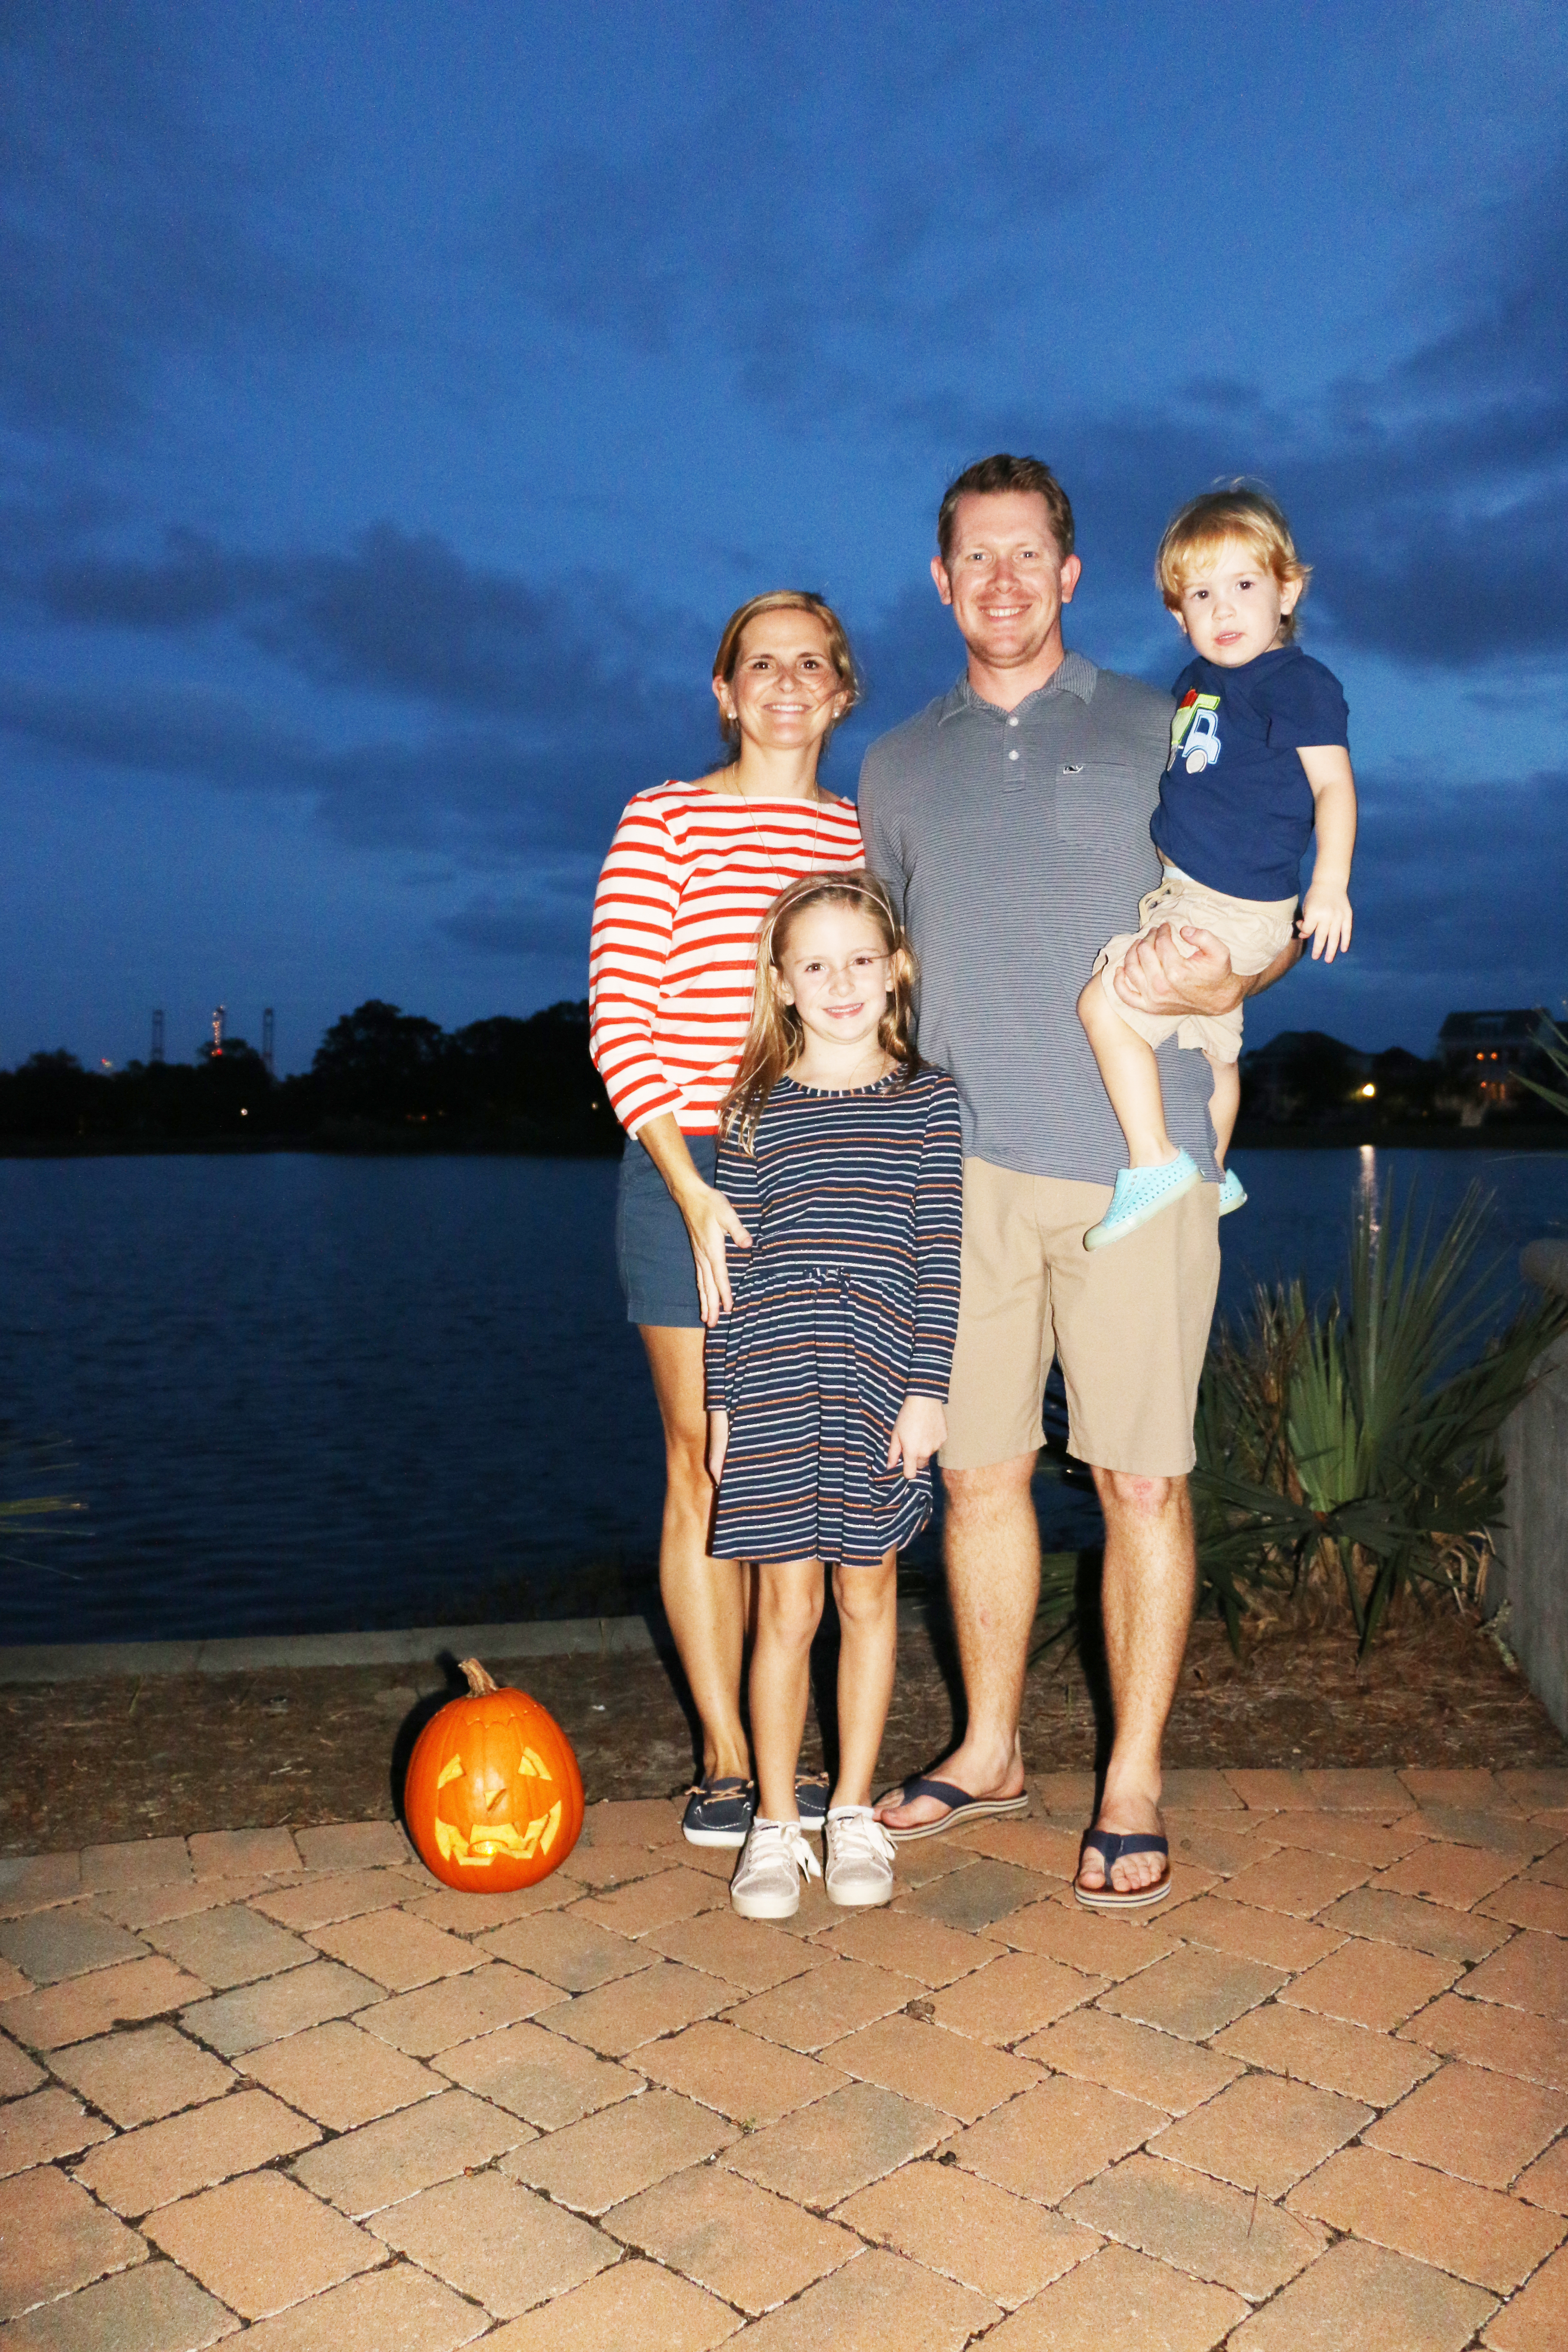 Smythe Lake is the perfect background for the Wilson family during the pumpkin walk.